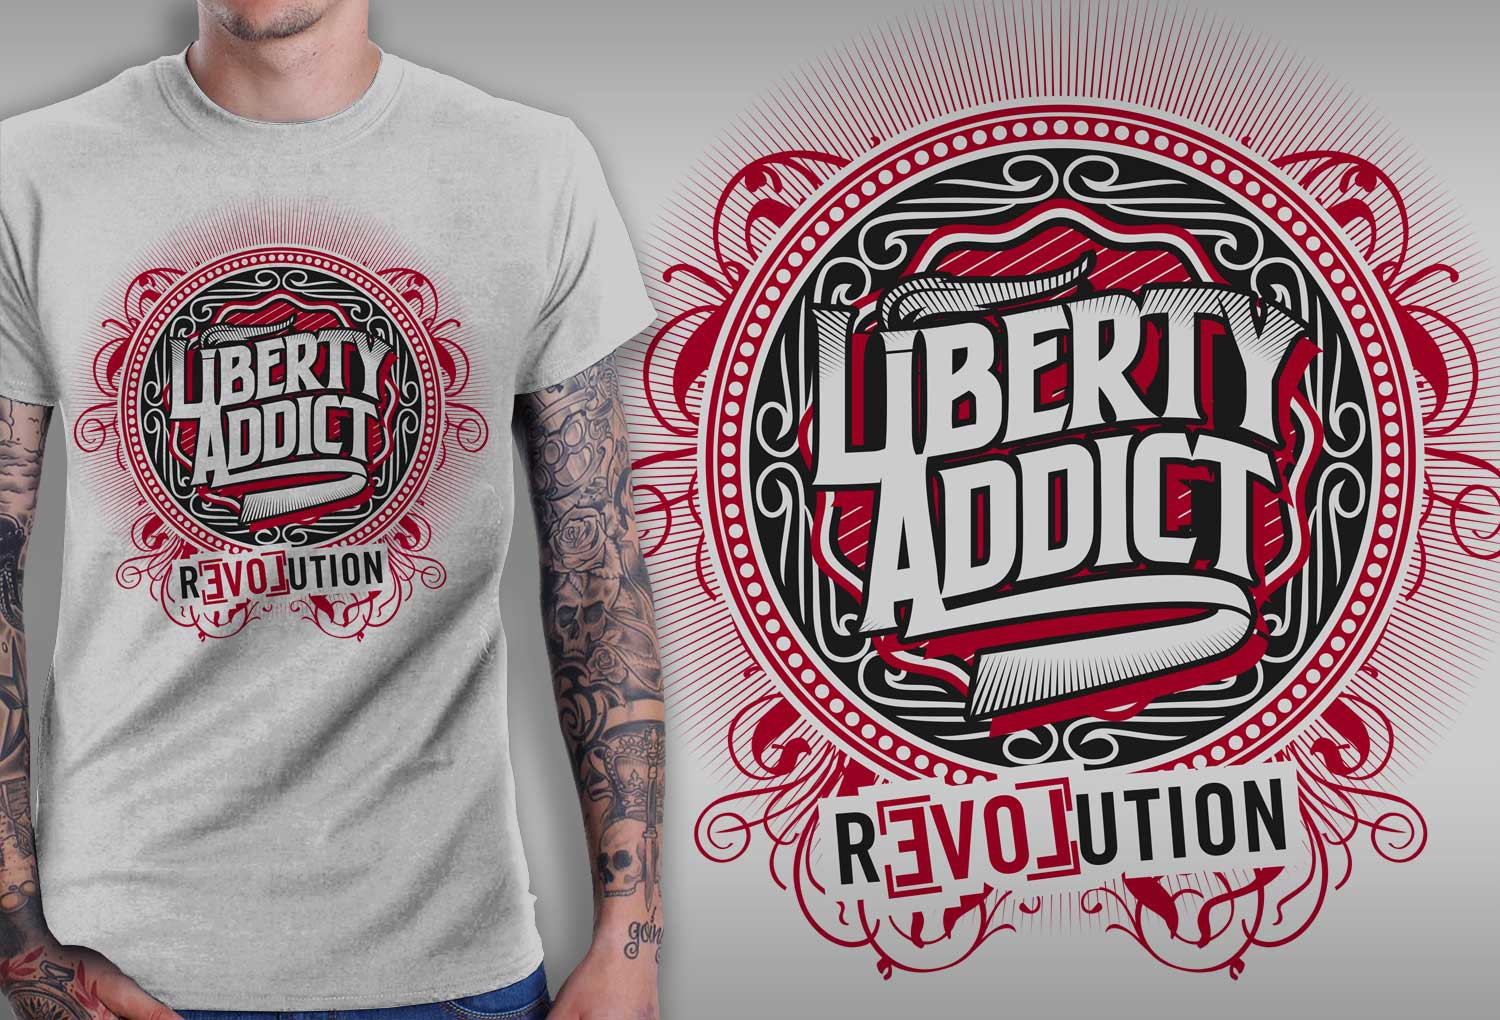 LIBERTY themed t-shirt needed.